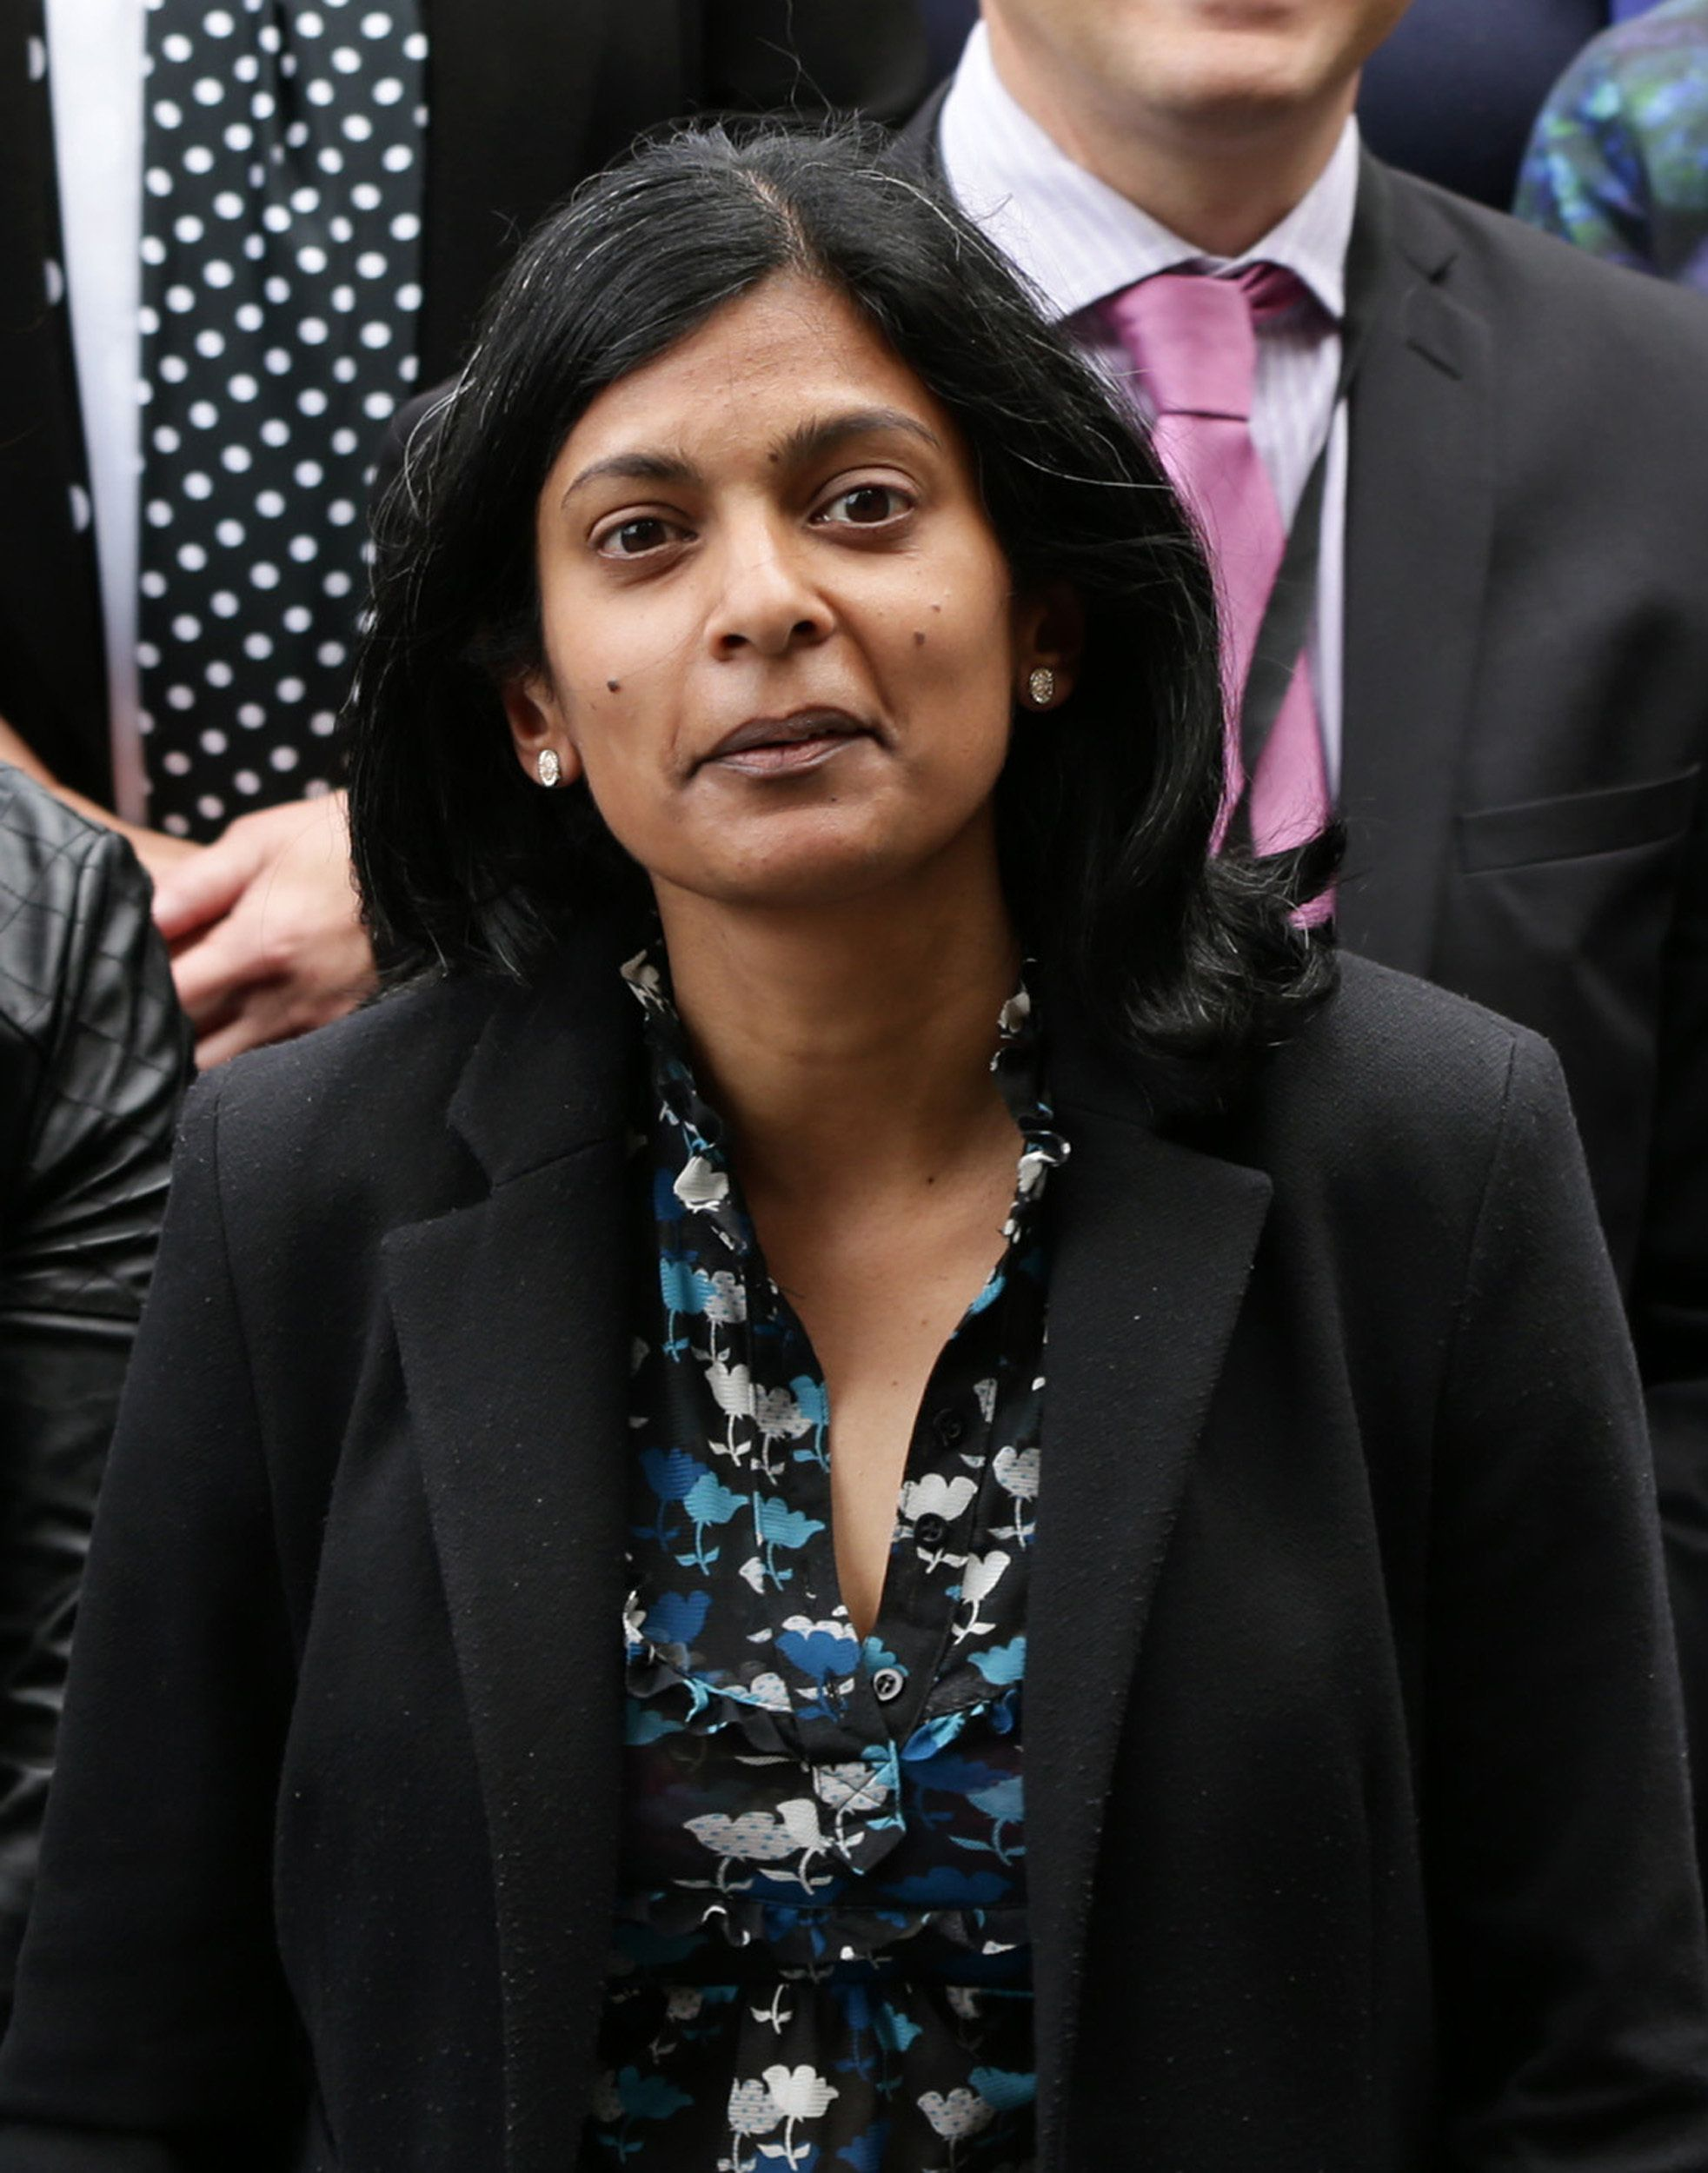 Ealing MP Rupa Huq wants a change in the law to prevent protests outside abortion clinics.